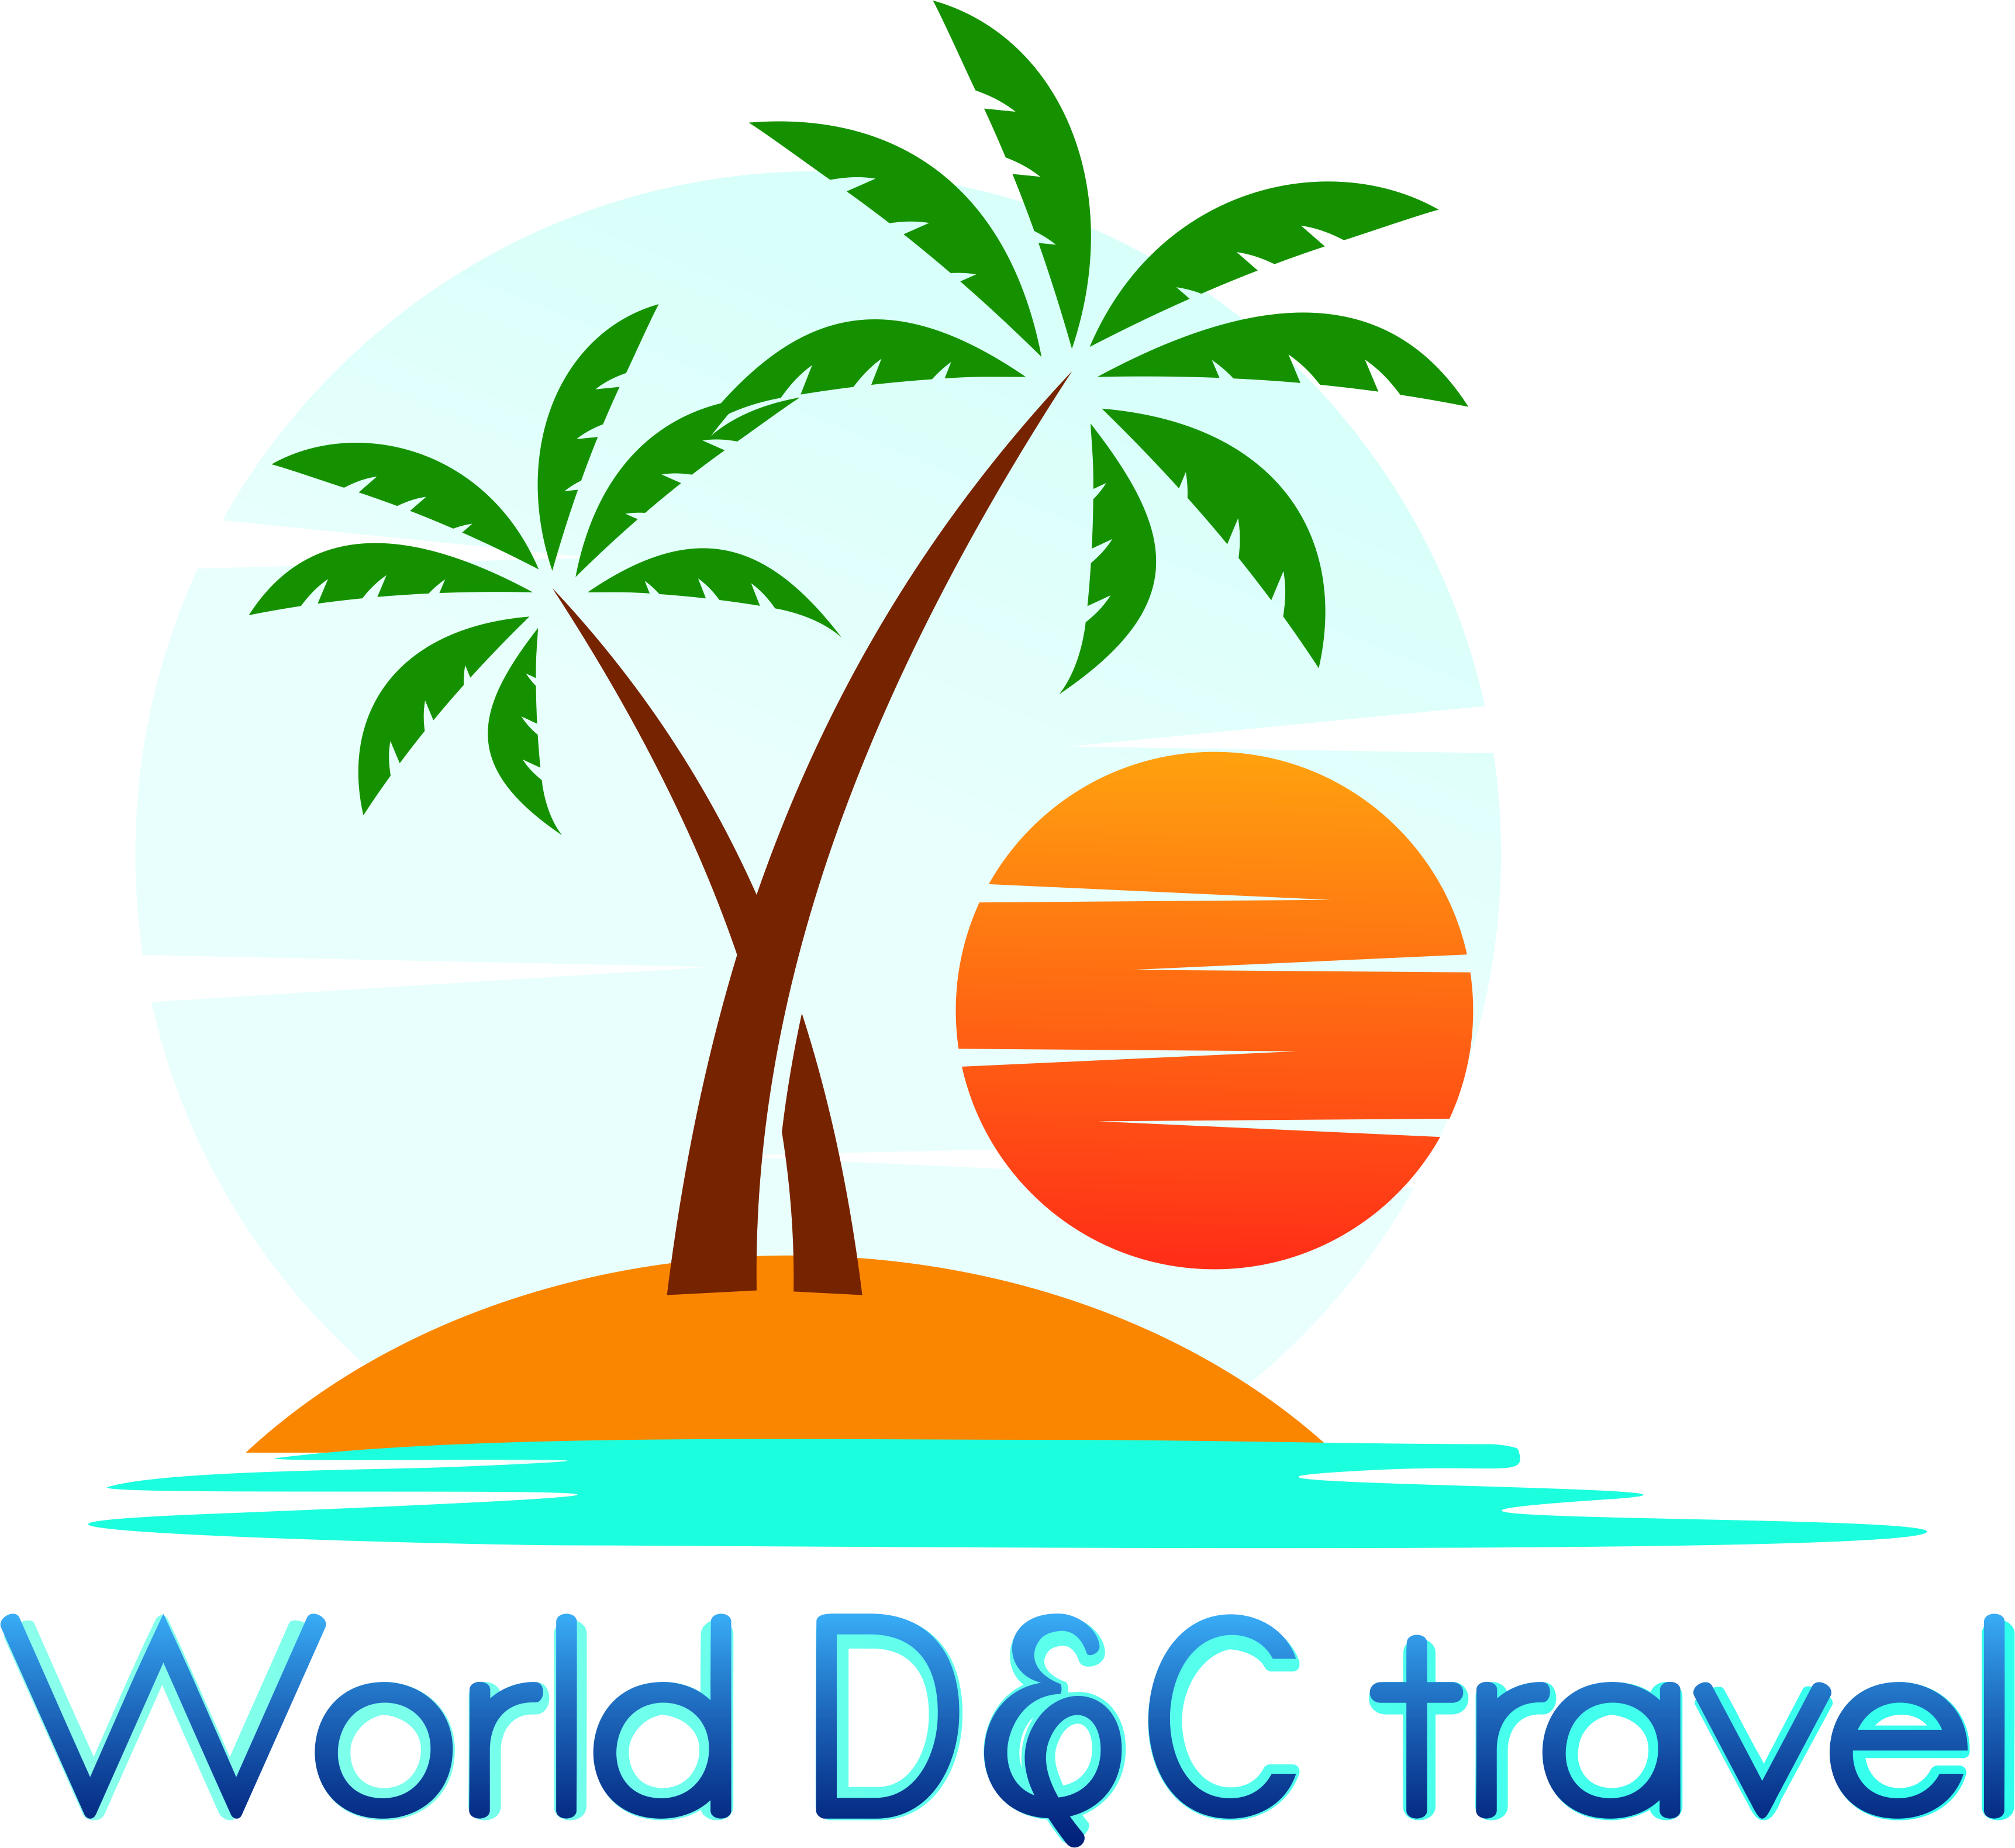 WORLD D&C travel